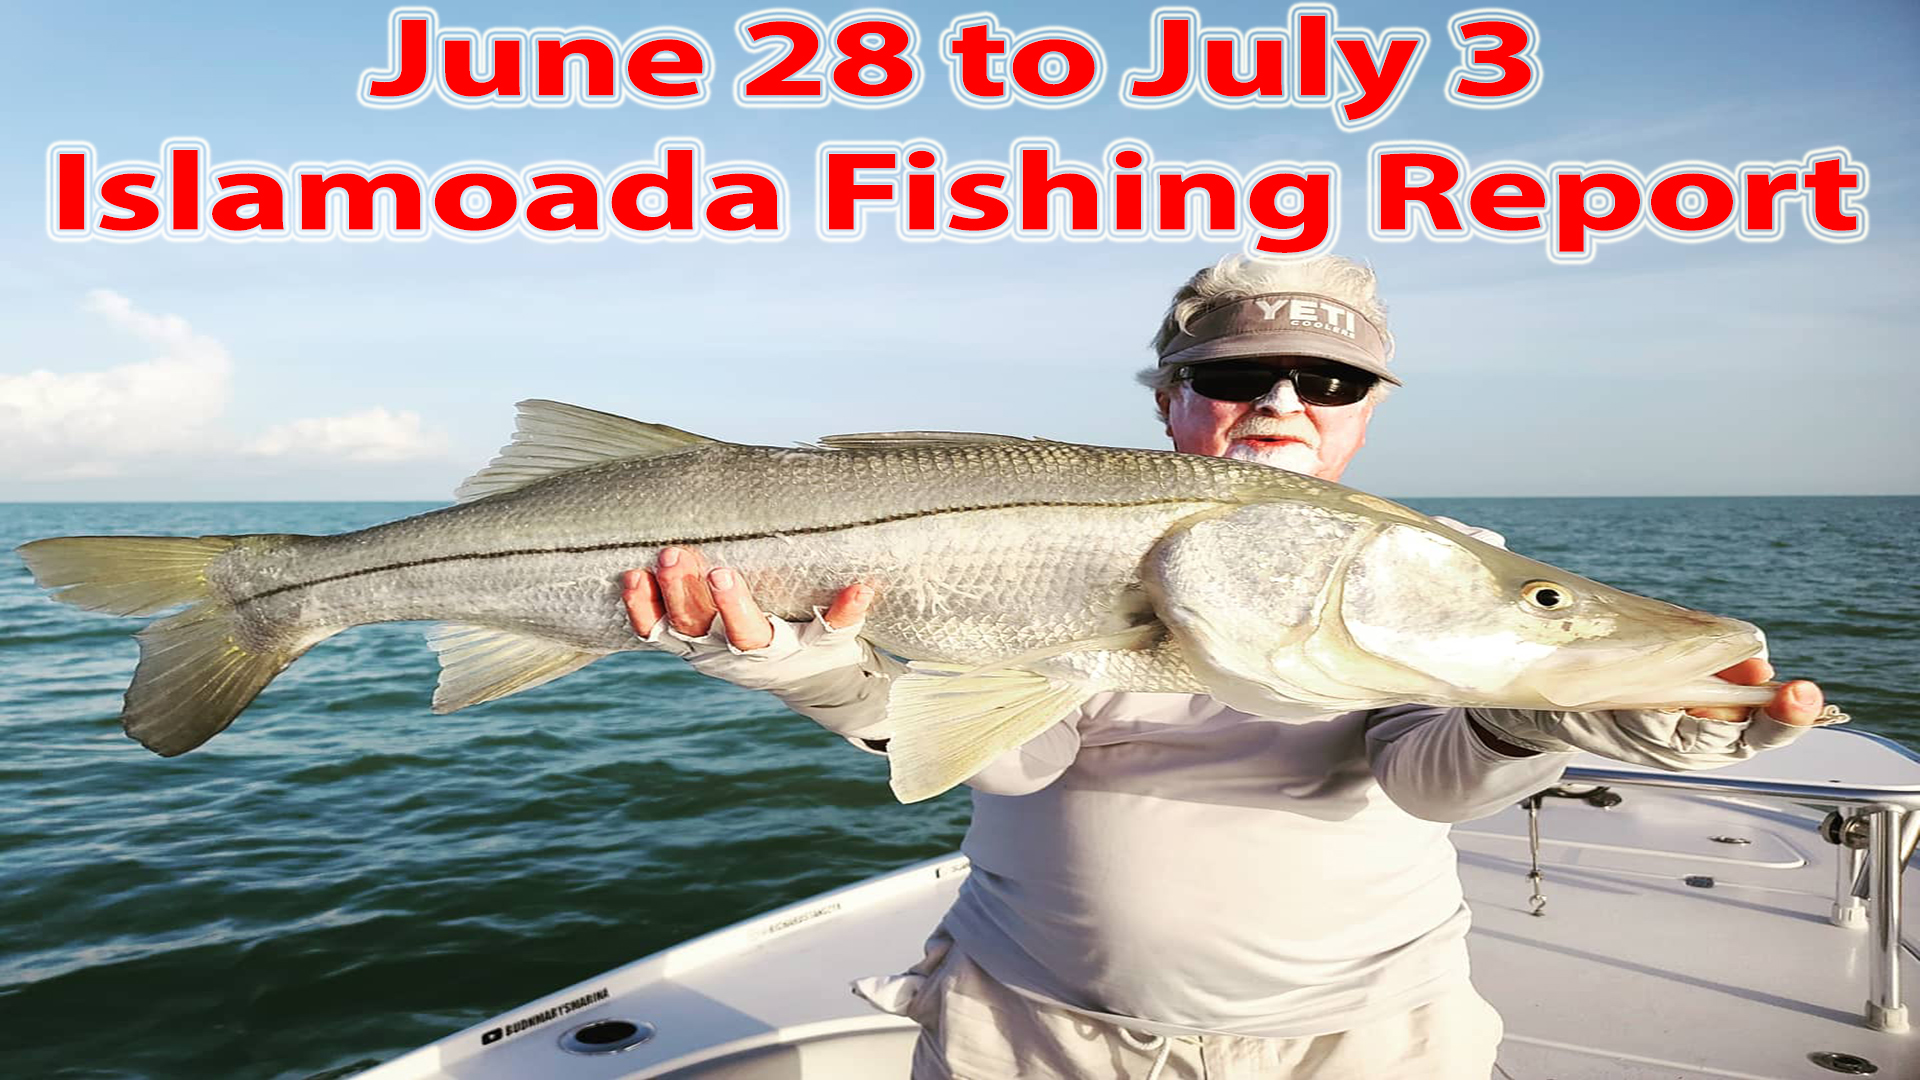 End of June Fishing Report